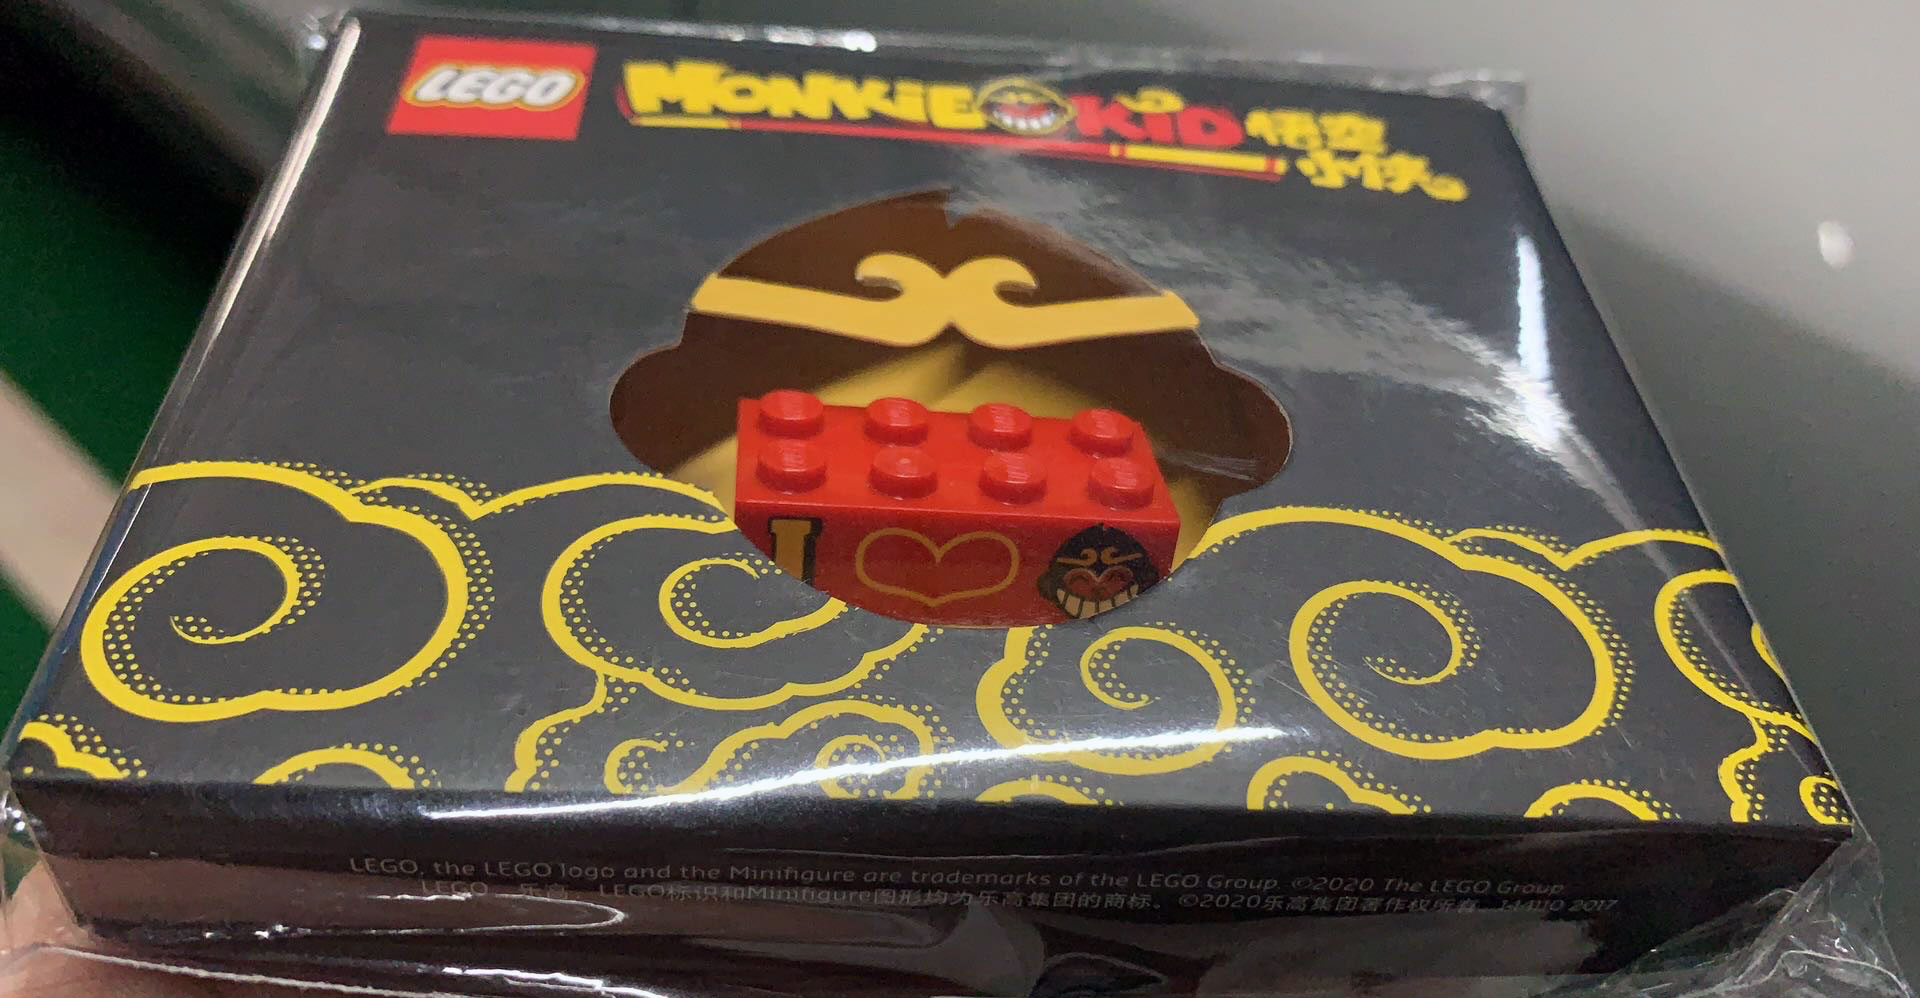 LEGO Monkie Kid Exclusive Gift